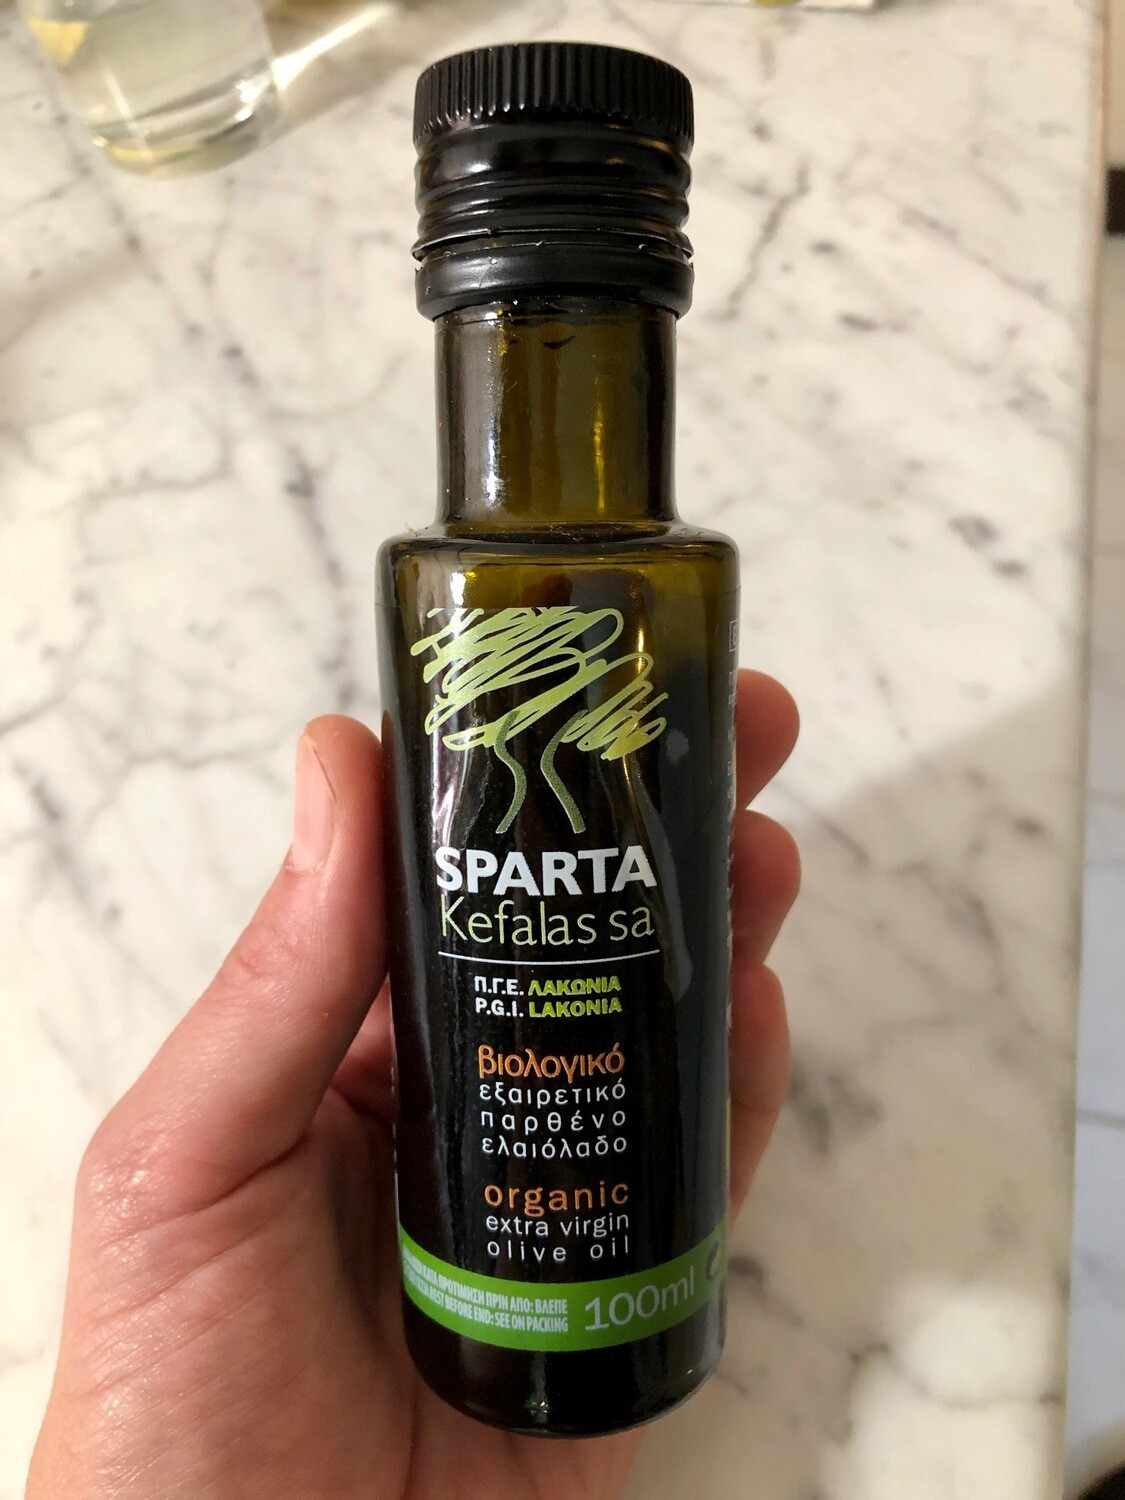 Kefalas Sparta Organic Extra Virgin Olive Oil 100ml